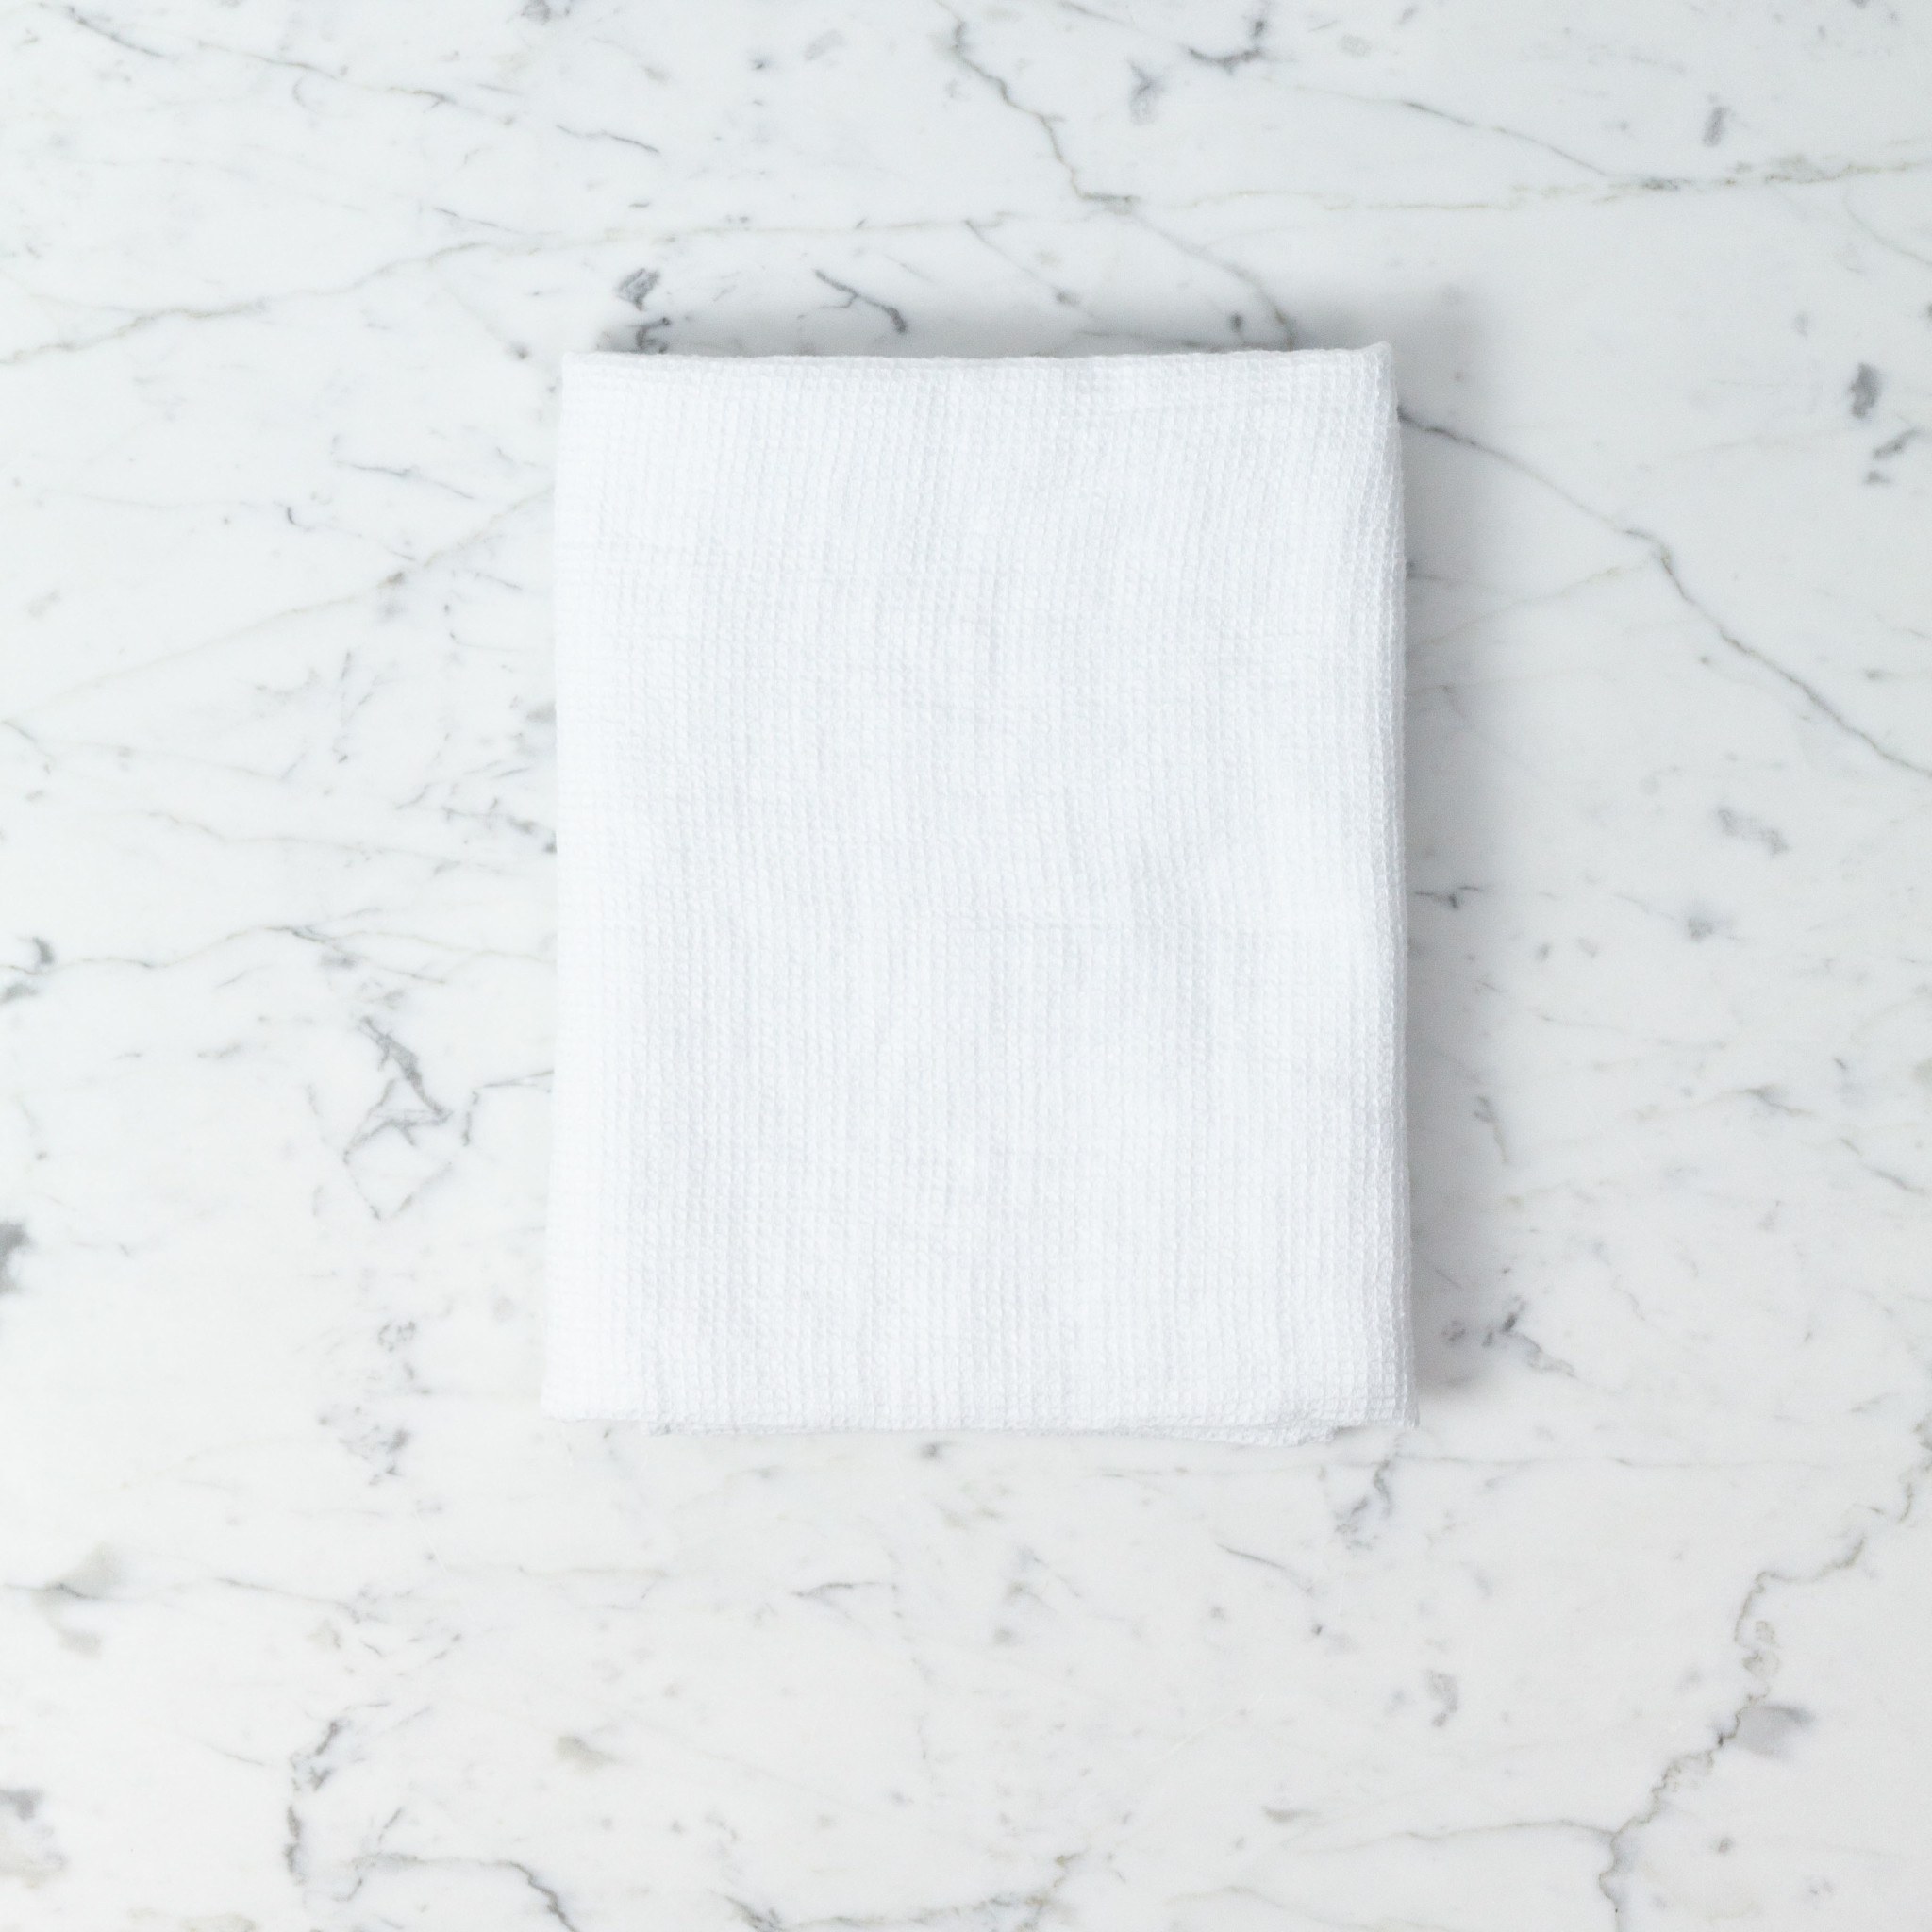 Linge Particulier Washed French Linen Waffle Mini Spa or Hand Towel - Optic White